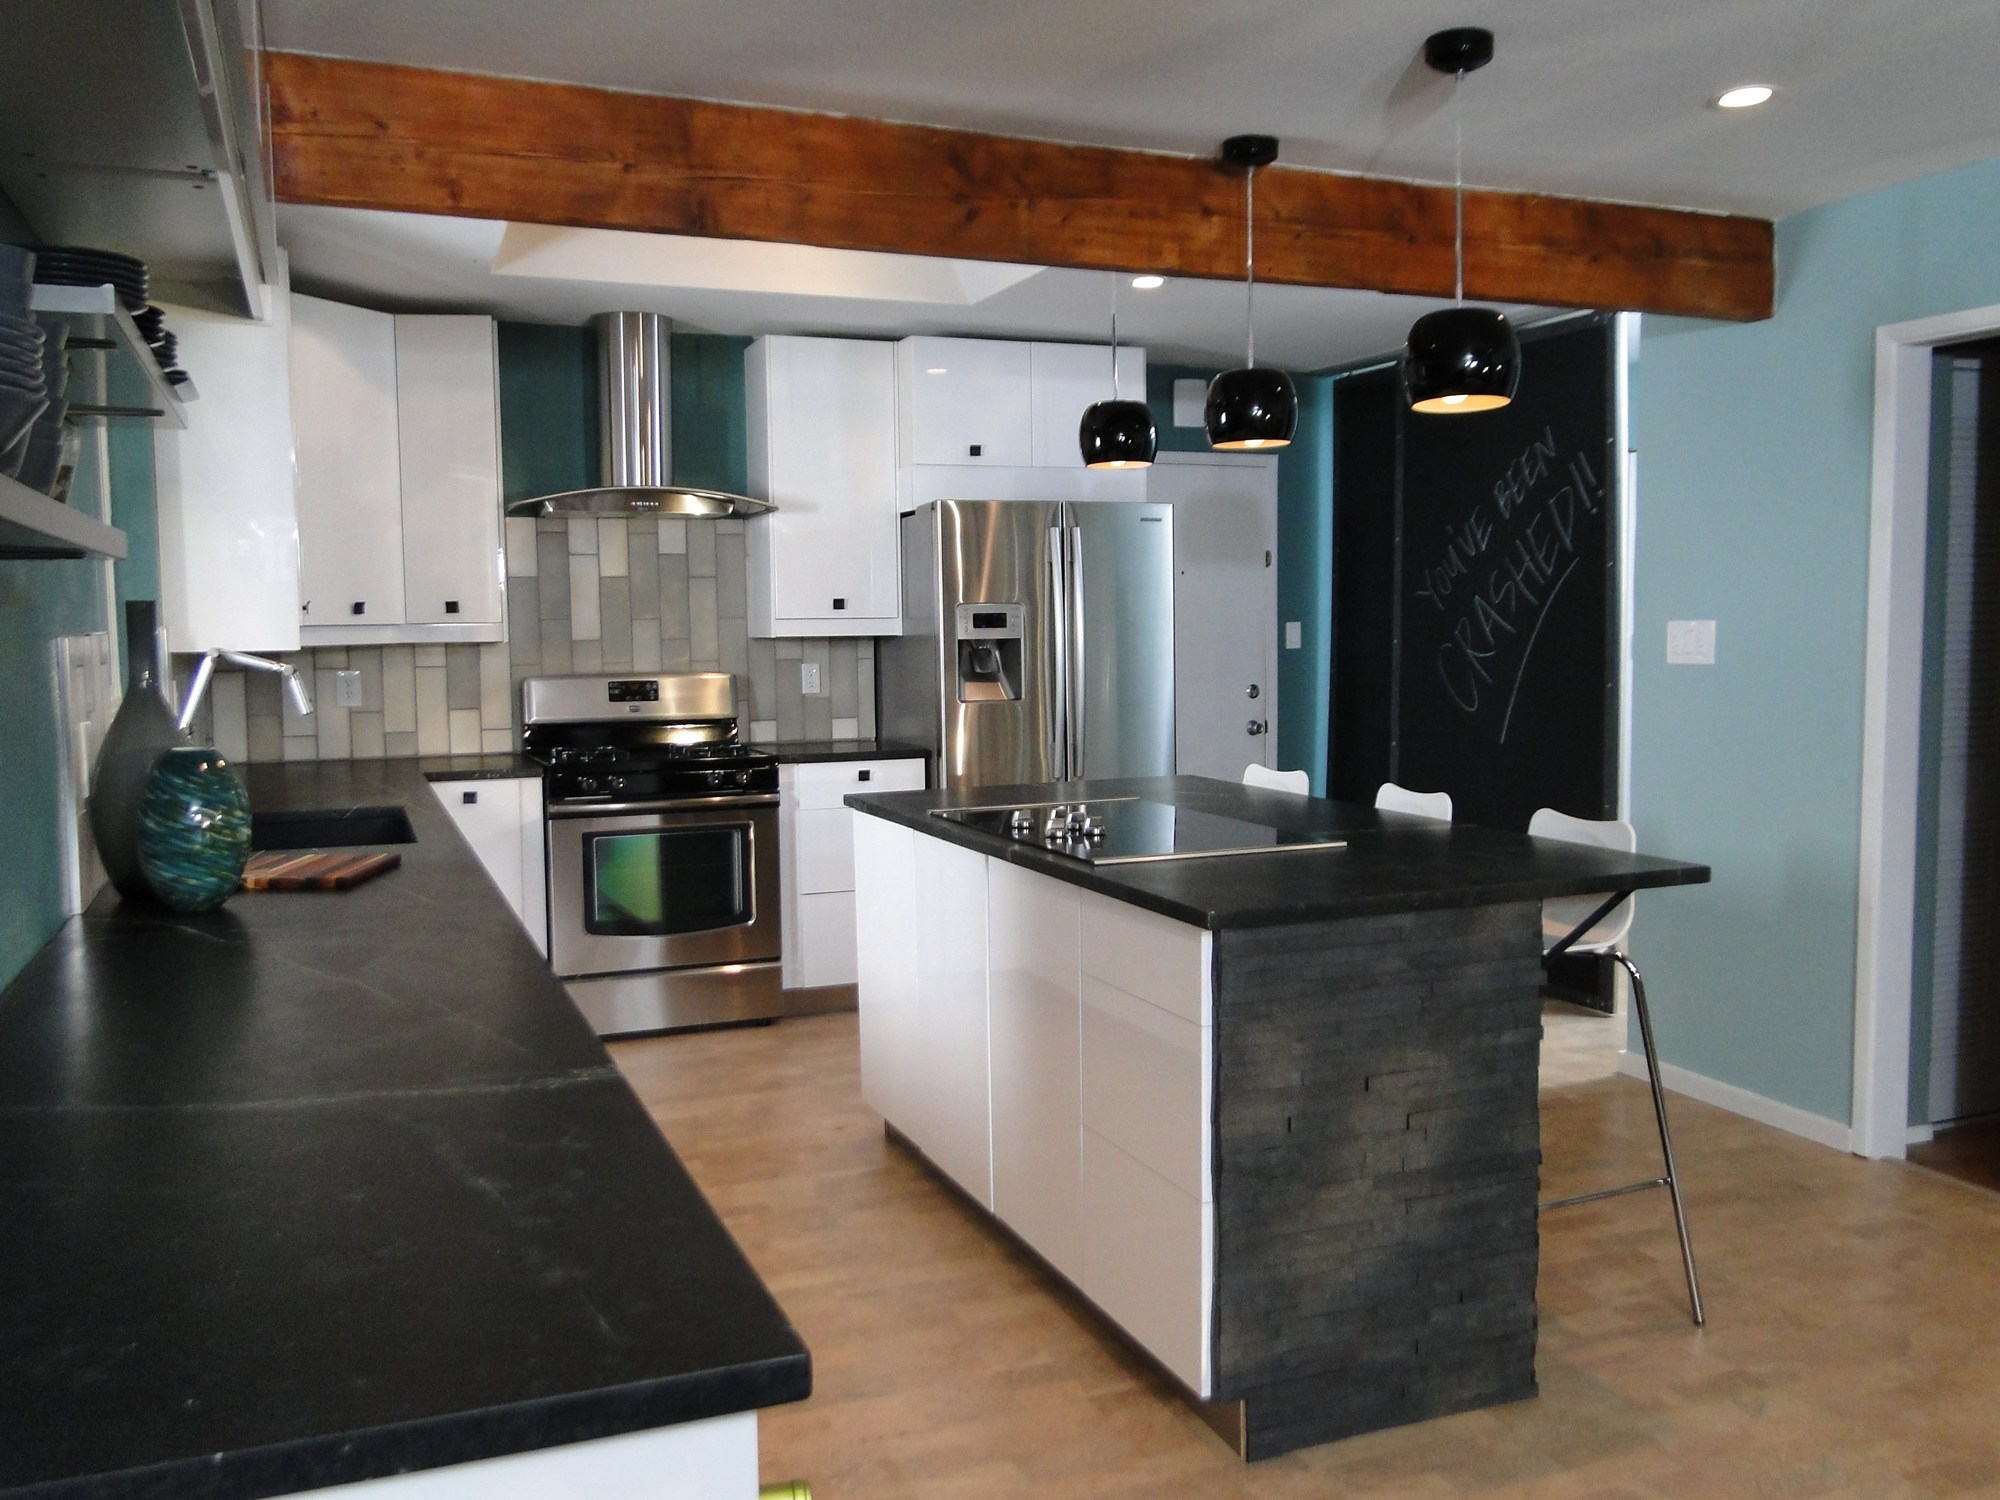 Cabinetry - Kitchen islands, cabinet doors, and other furniture applications give instant luxe to your space.